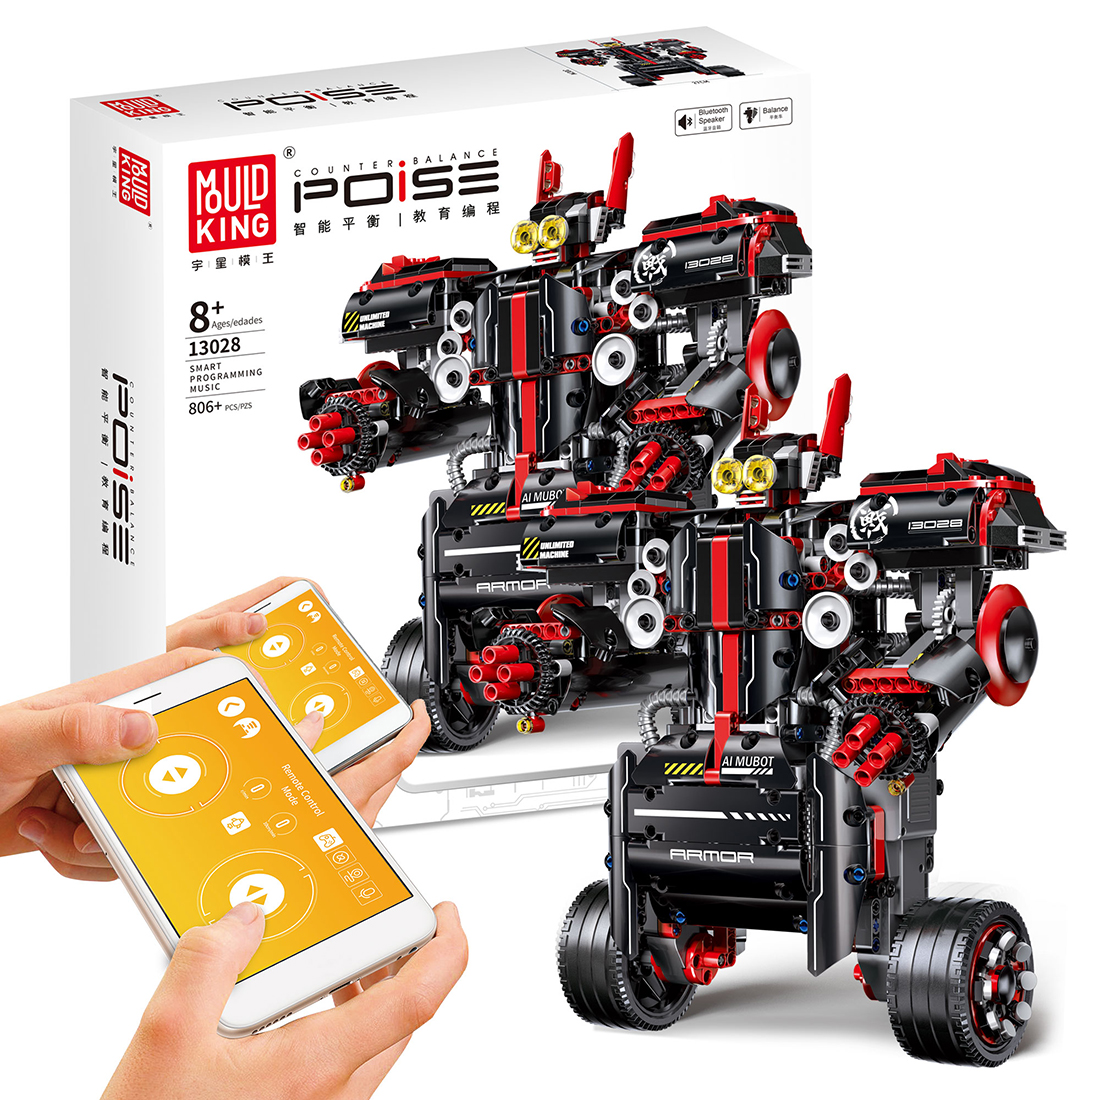 806Pcs APP Controlled RC Balanced Programming Robot Building Kit - Black image